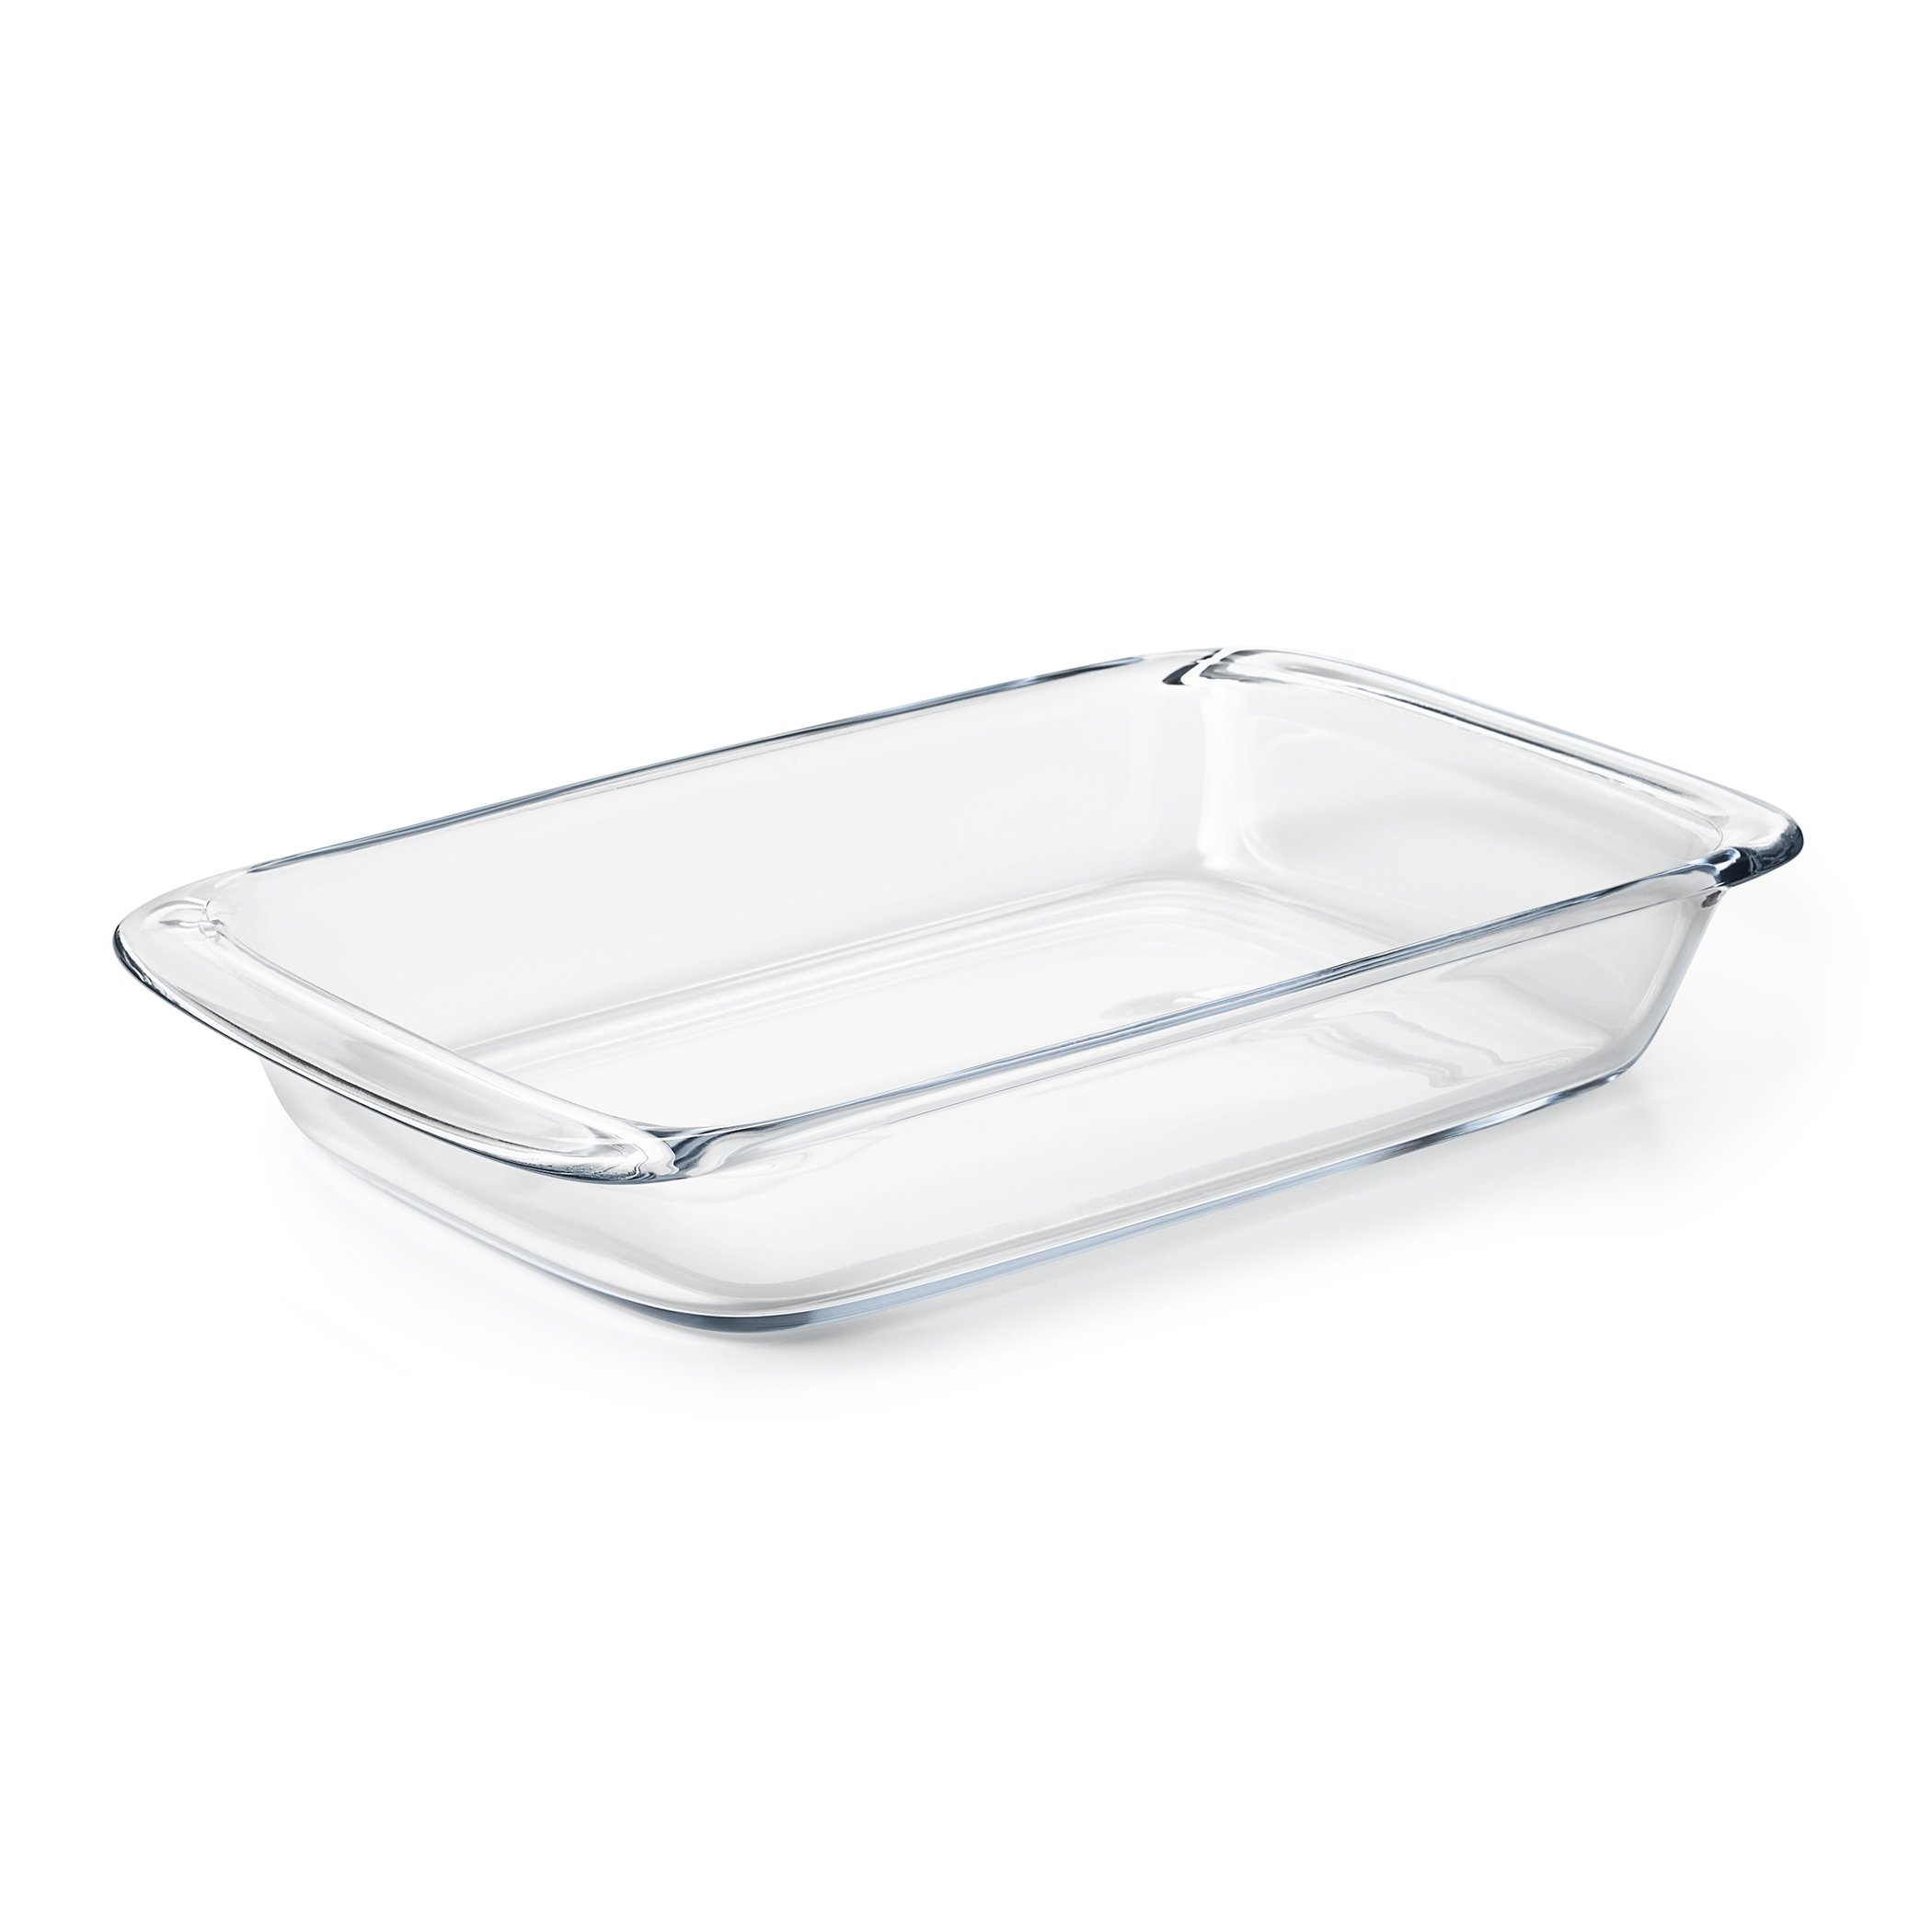 OXO Good Grips Freezer-to-Oven Safe 3 Qt Glass Baking Dish with Lid, 9 x 13 by OXO (Image #10)